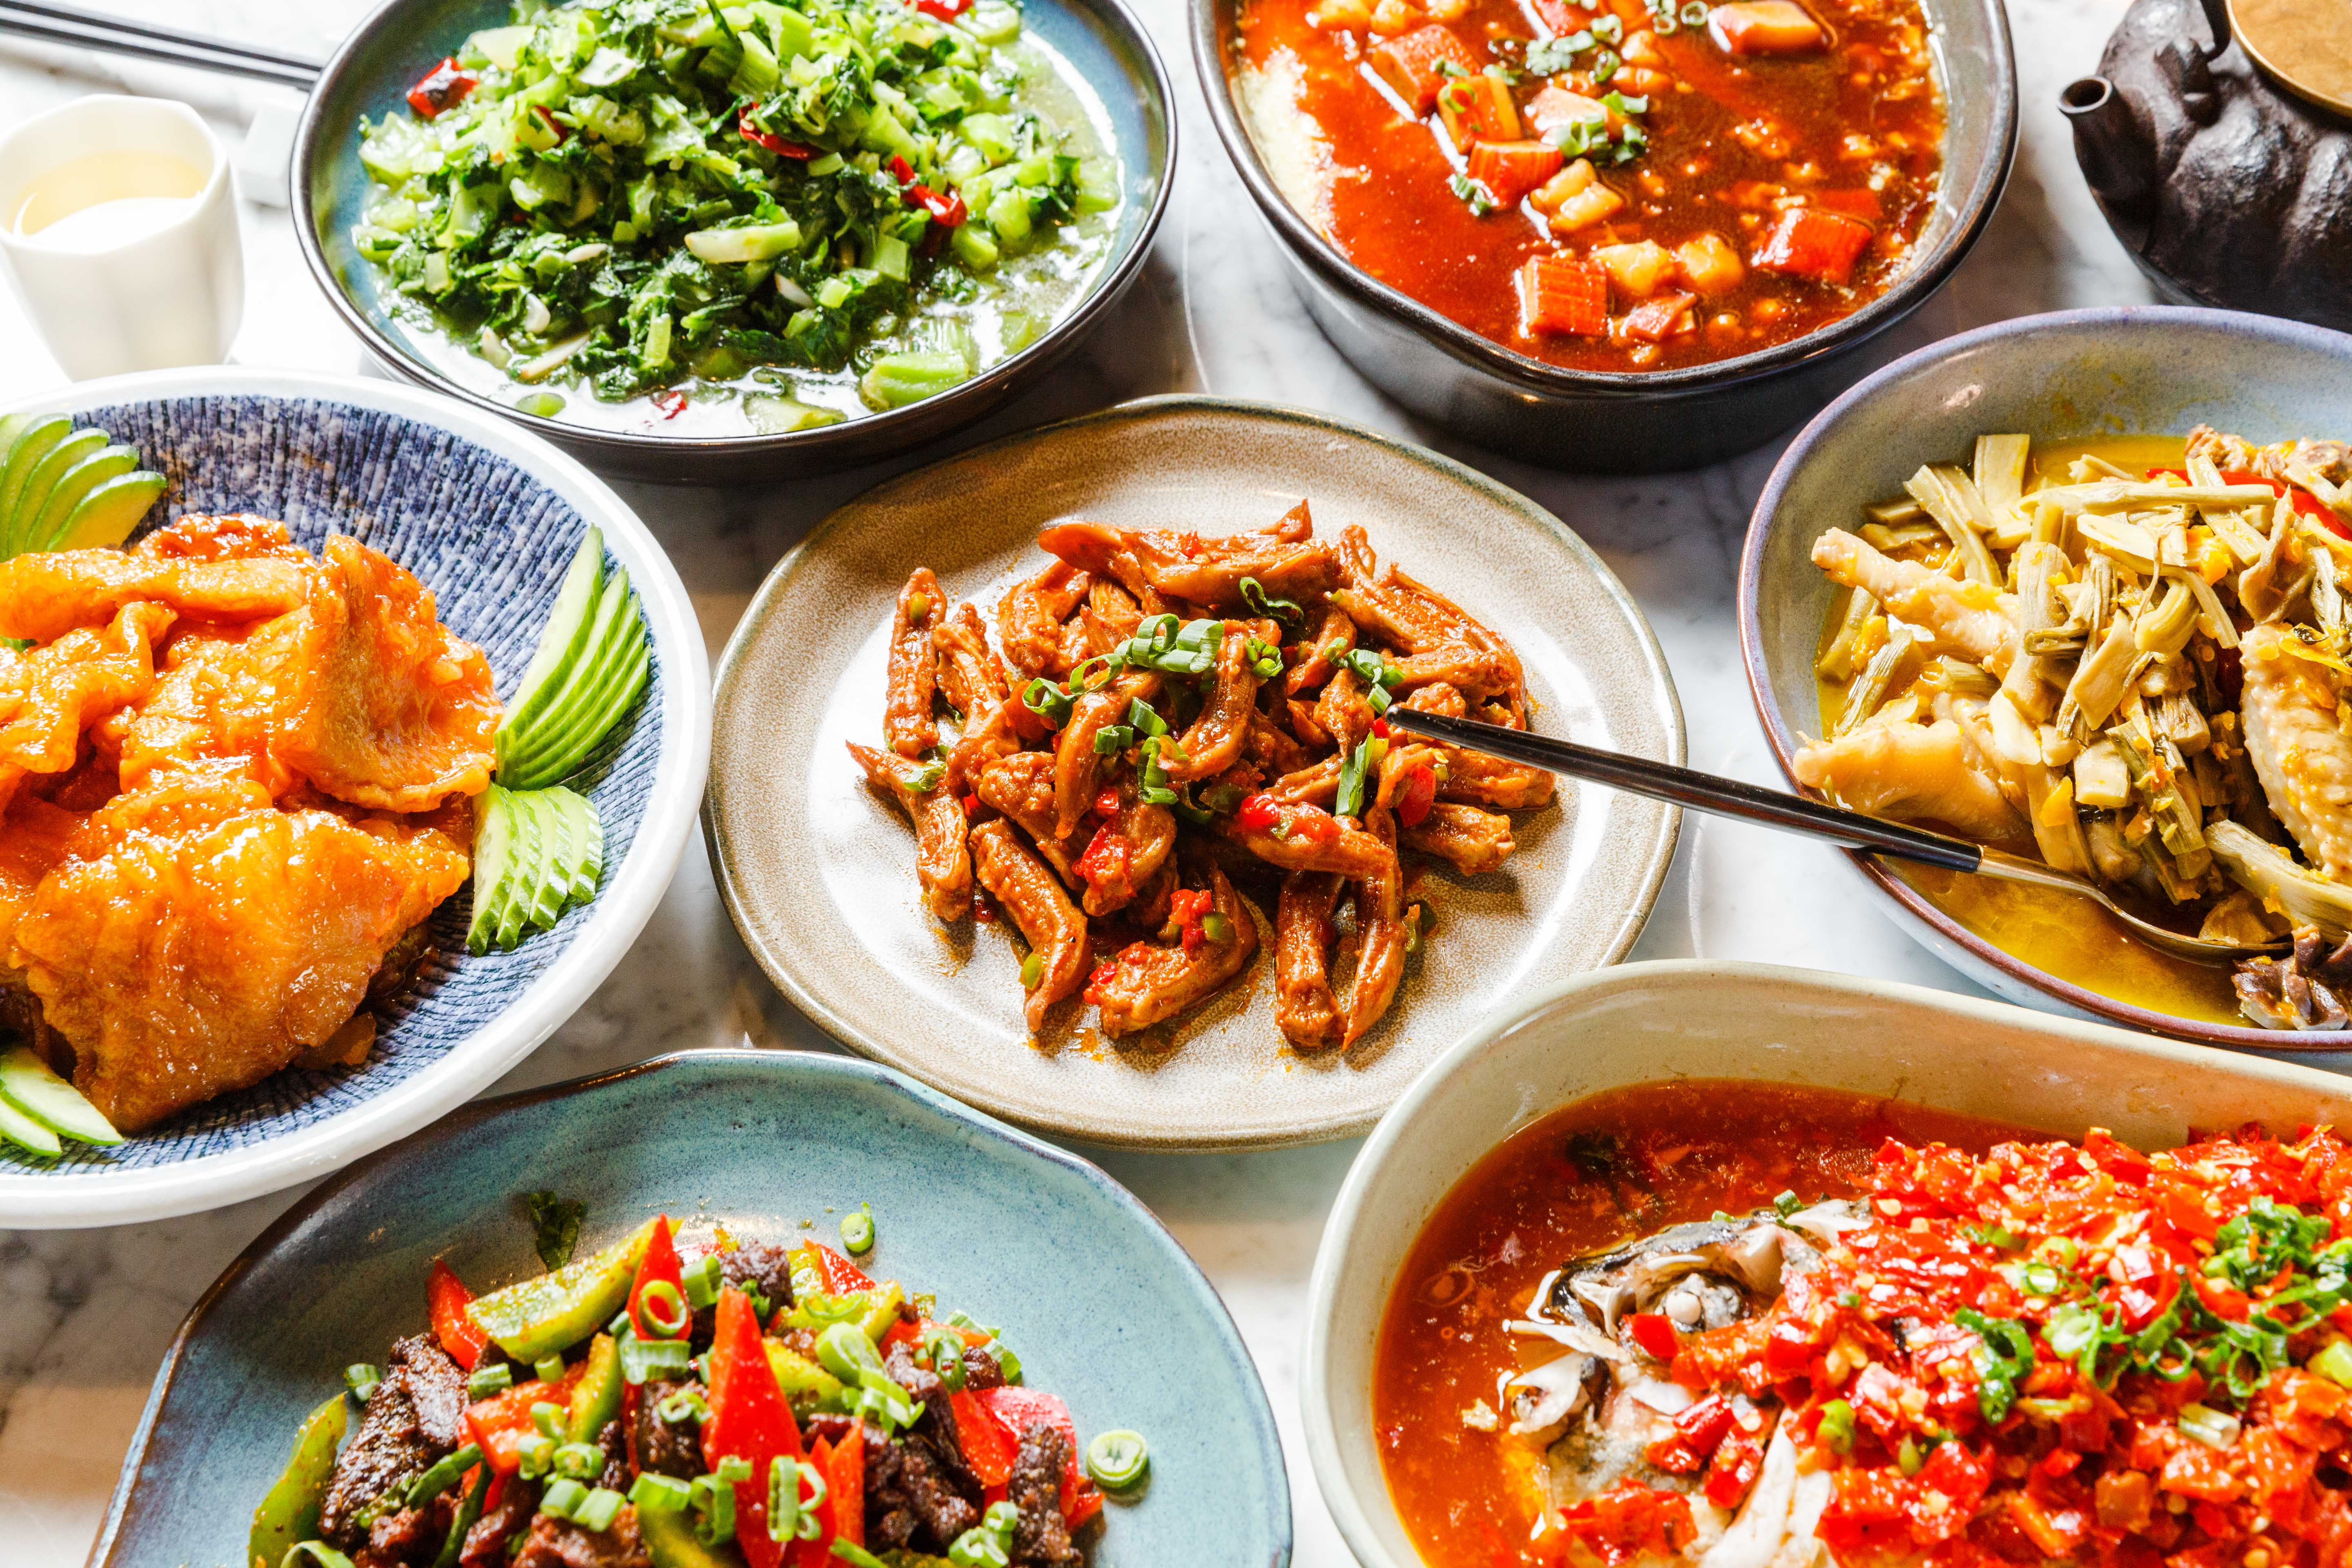 Eight assorted colorful dishes on plates.